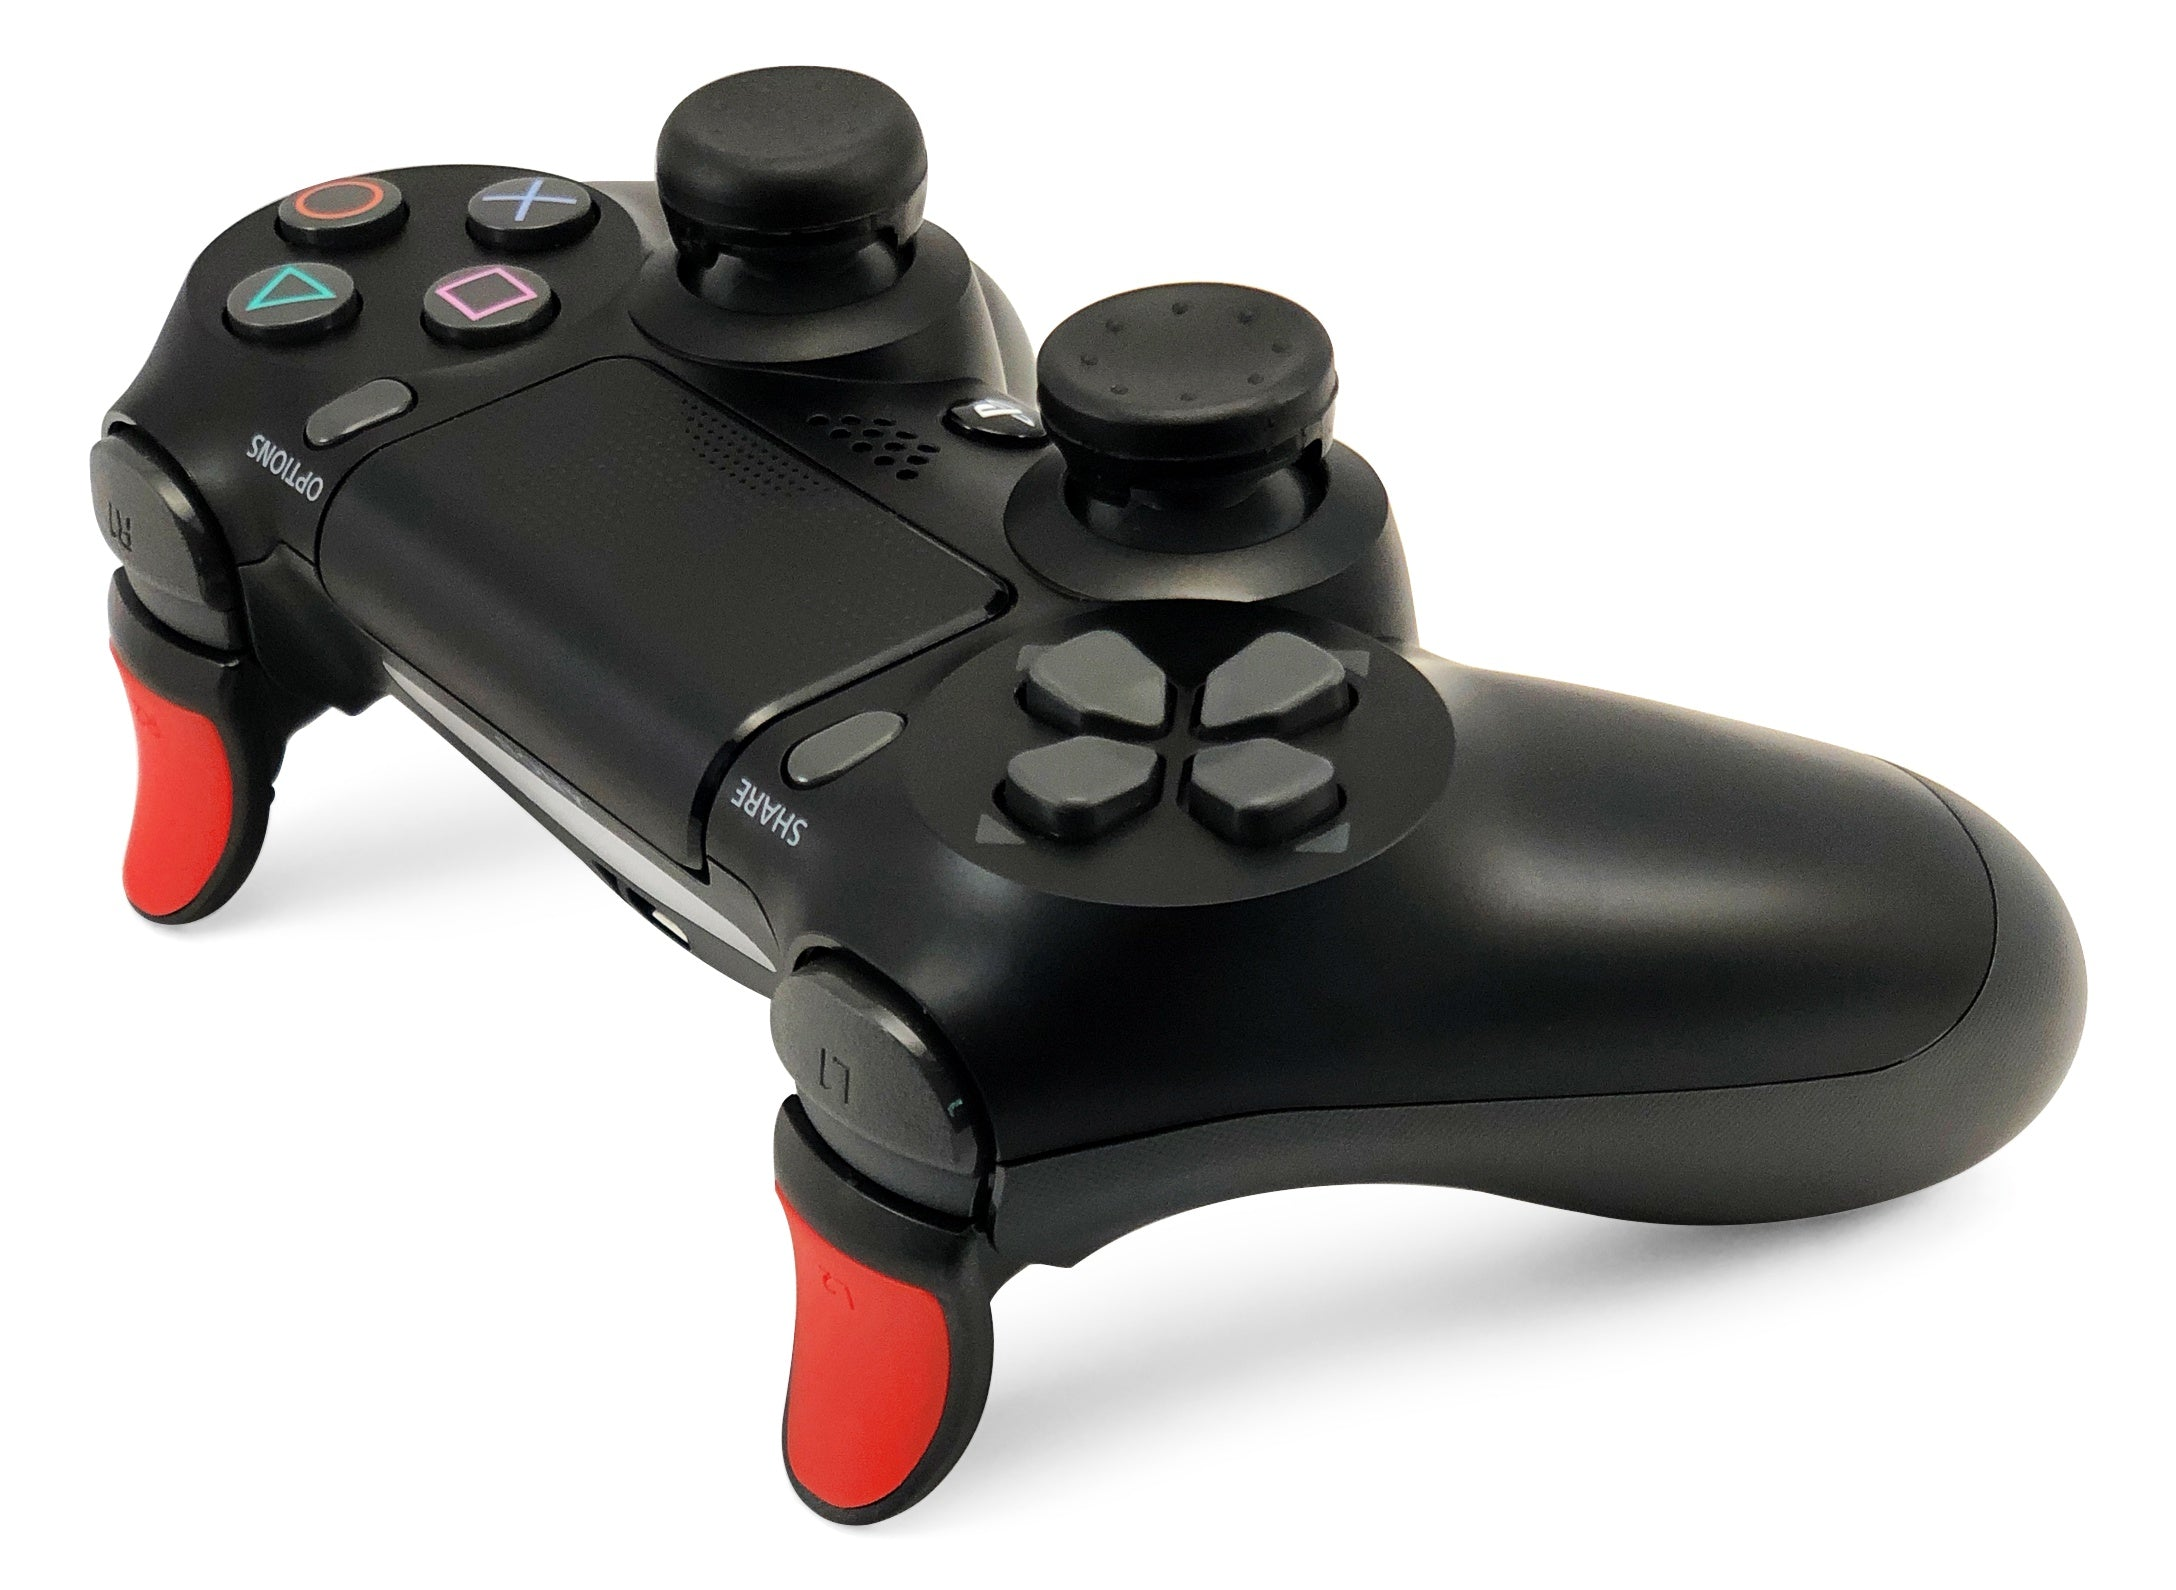 Weapons of Mass Destruction - PS4 Performance Triggers and Precision Thumbsticks - 1 Medium Stem & 1 Short Stem Stick - Black & Red